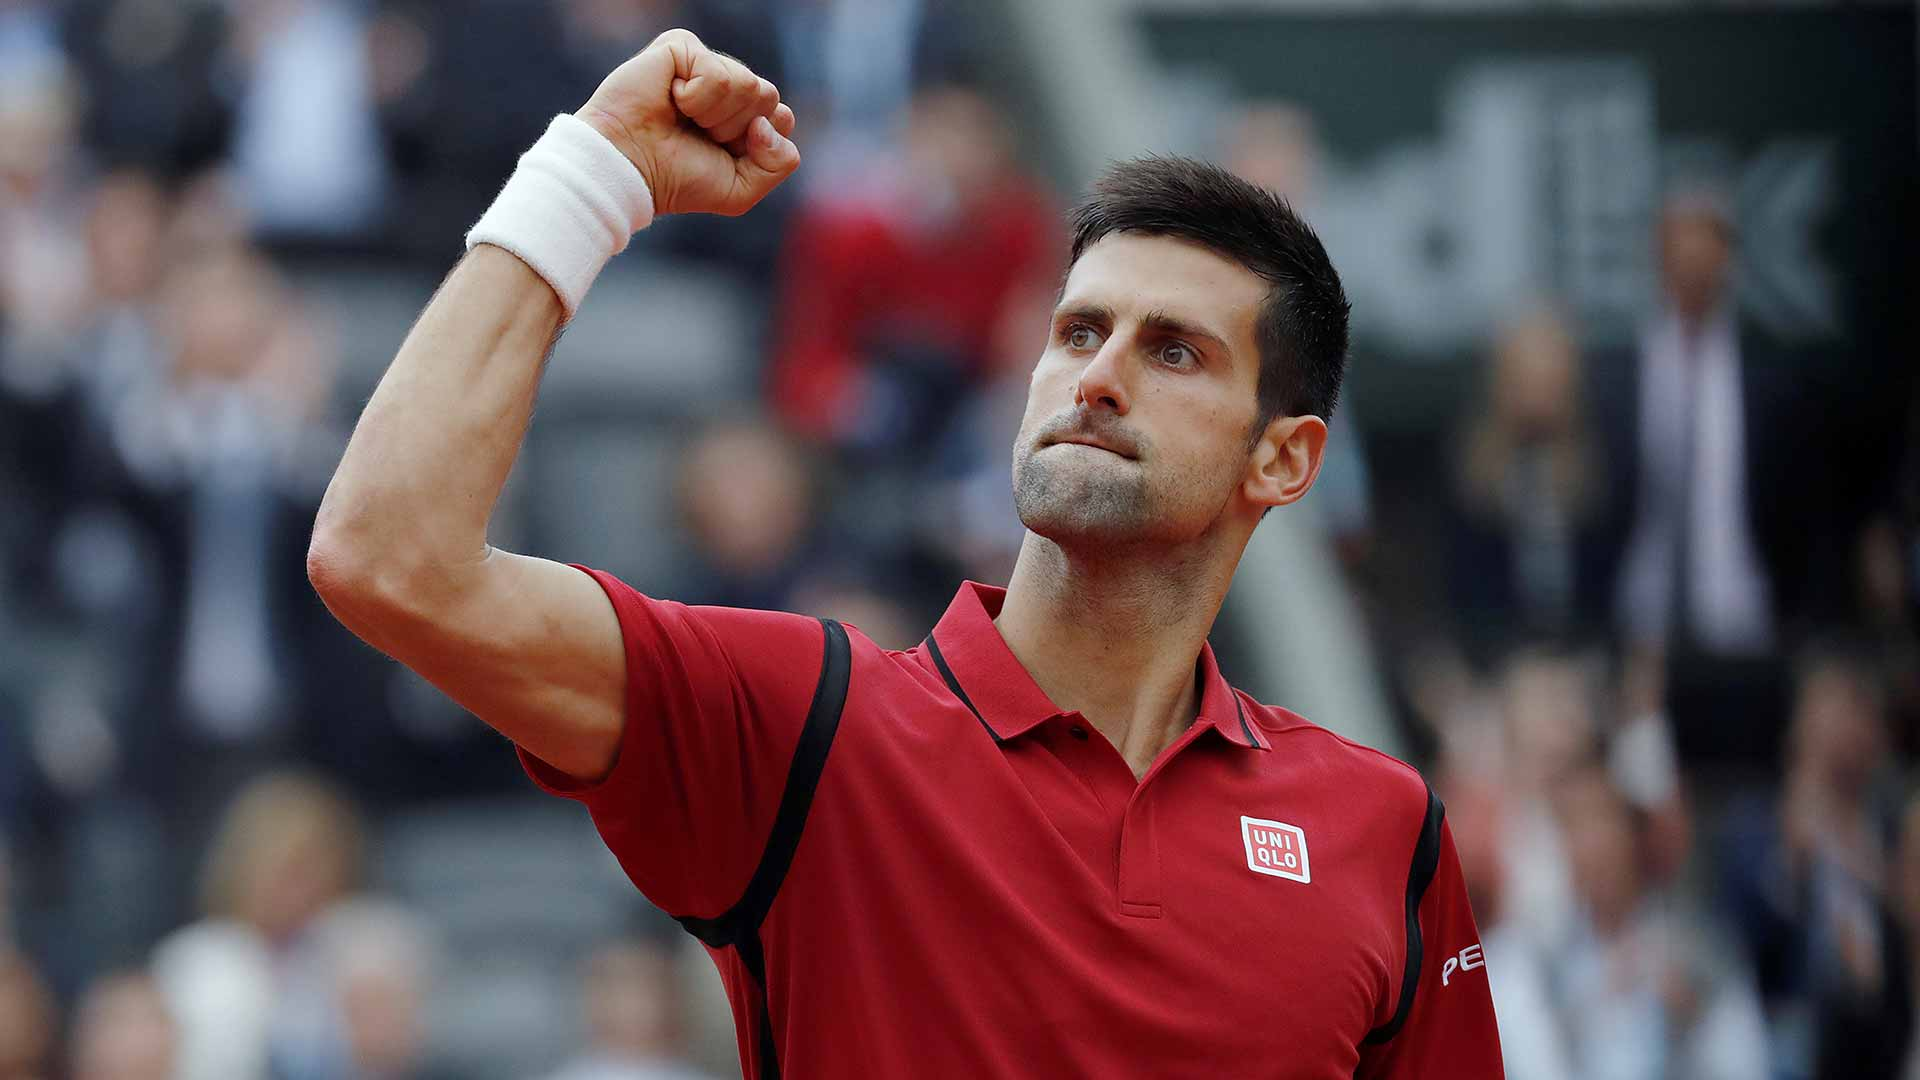 djokovic-fist-roland-garros-2016-sunday2